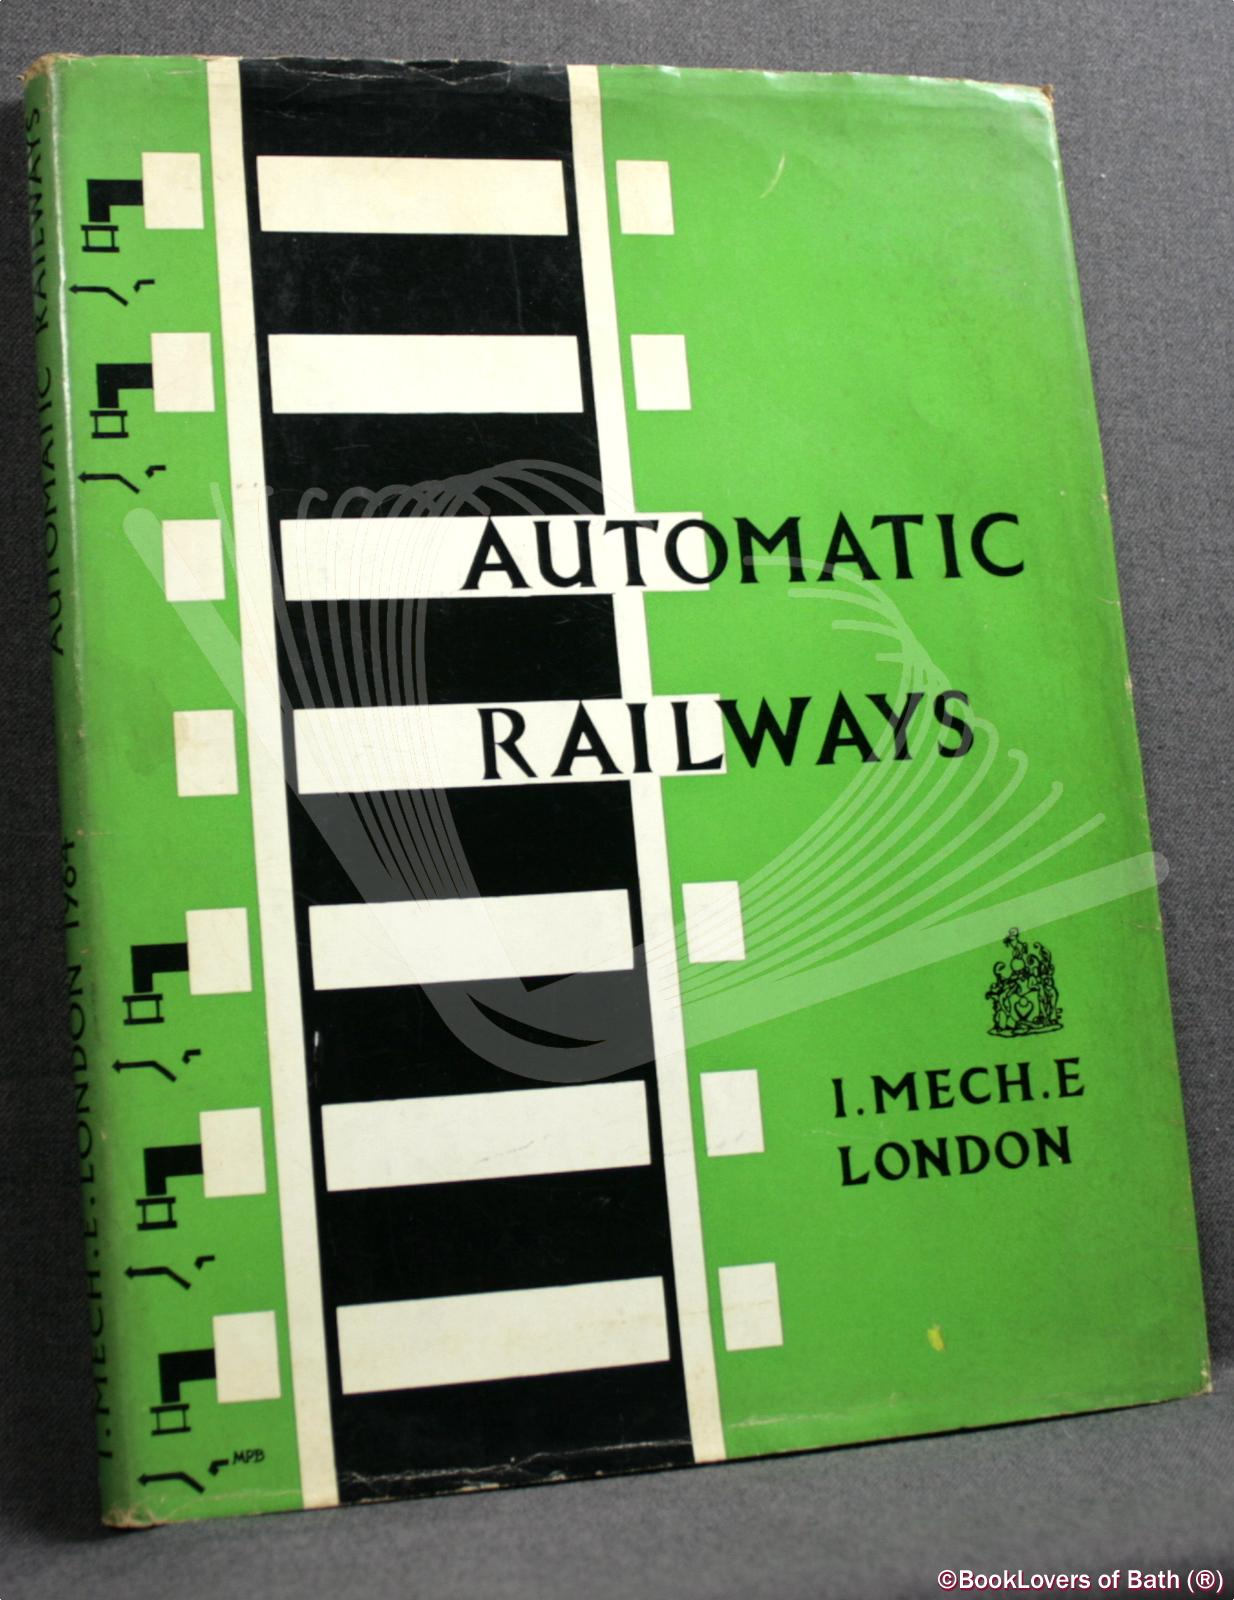 Automatic Railways: A Convention Arranged by the Railway Engineering Group 23rd-25th September 1964 - Anon.